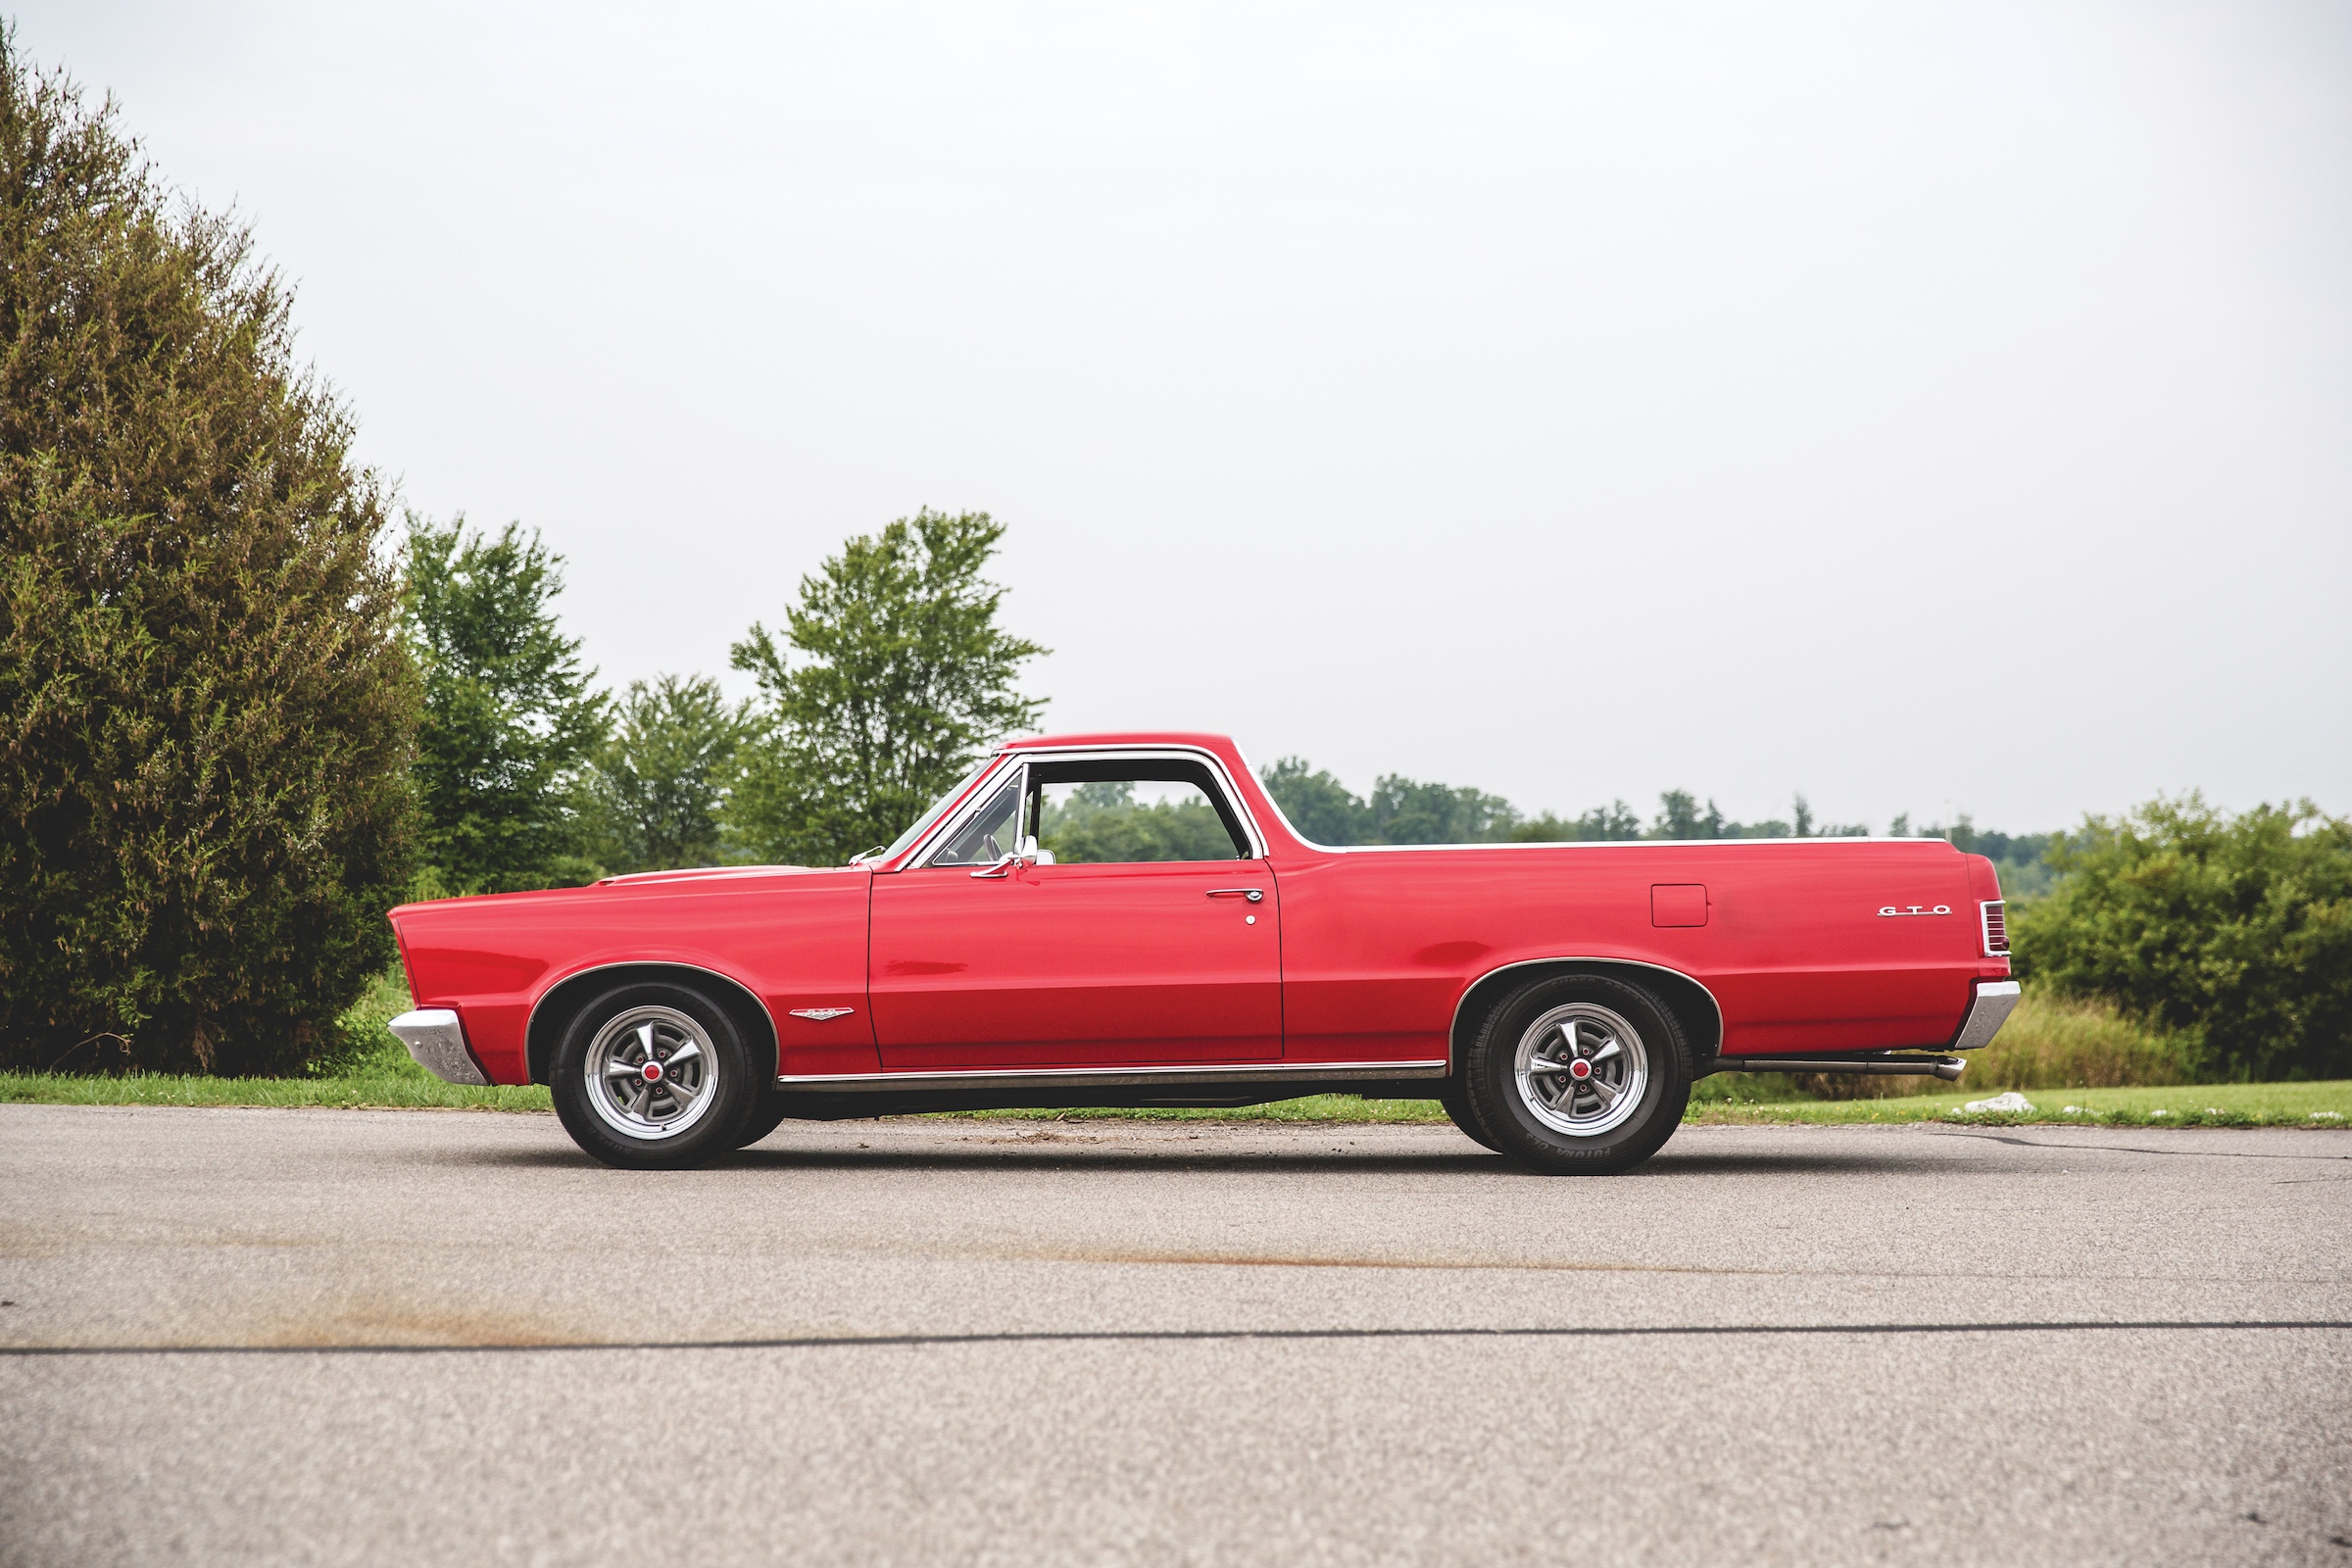 The Only One In The World - A Pontiac GTO Chief Camino